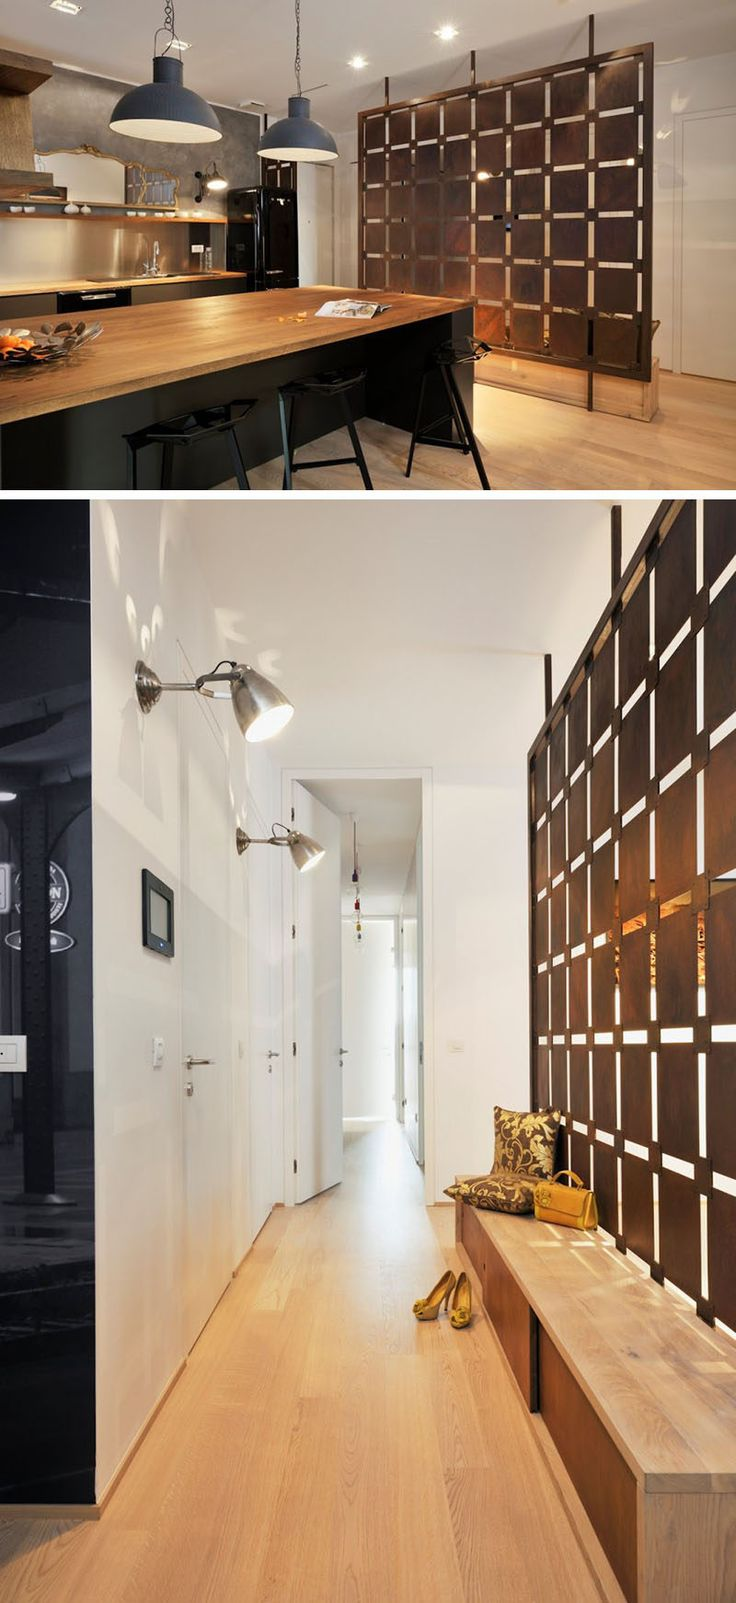 Creative ideas for home interior  best the square rooms images on pinterest  home architecture